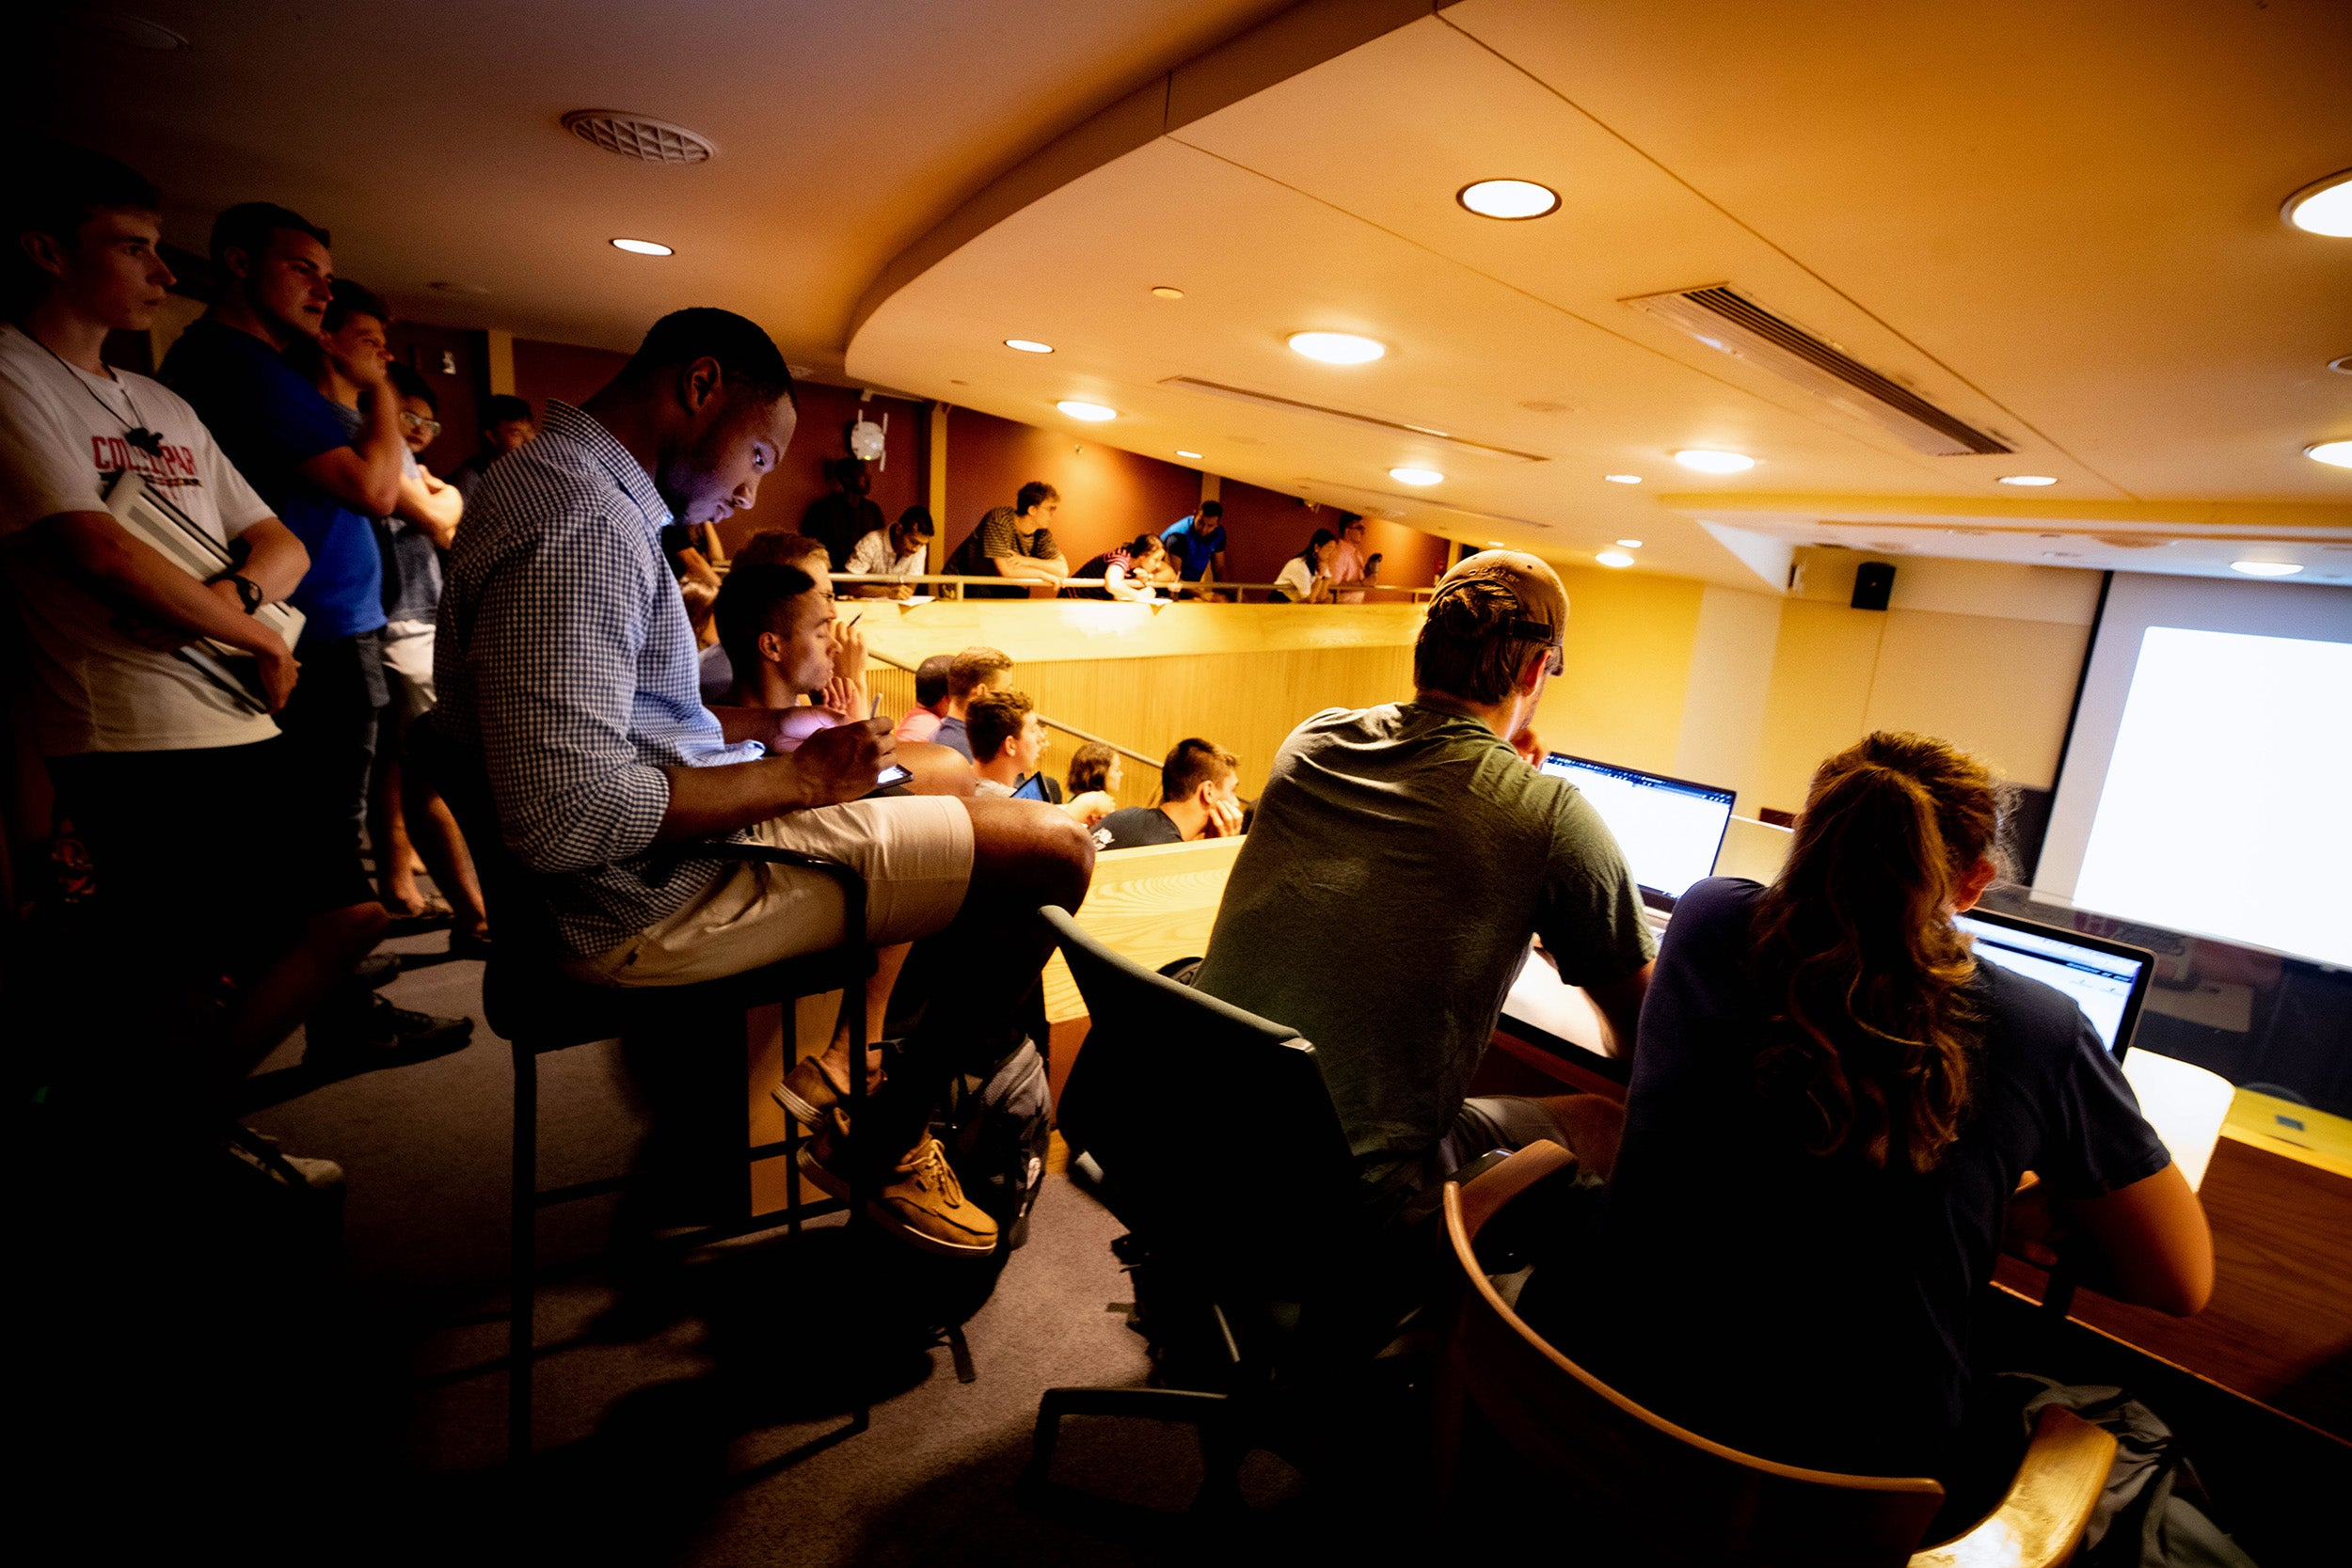 Students listen to lecture during class.